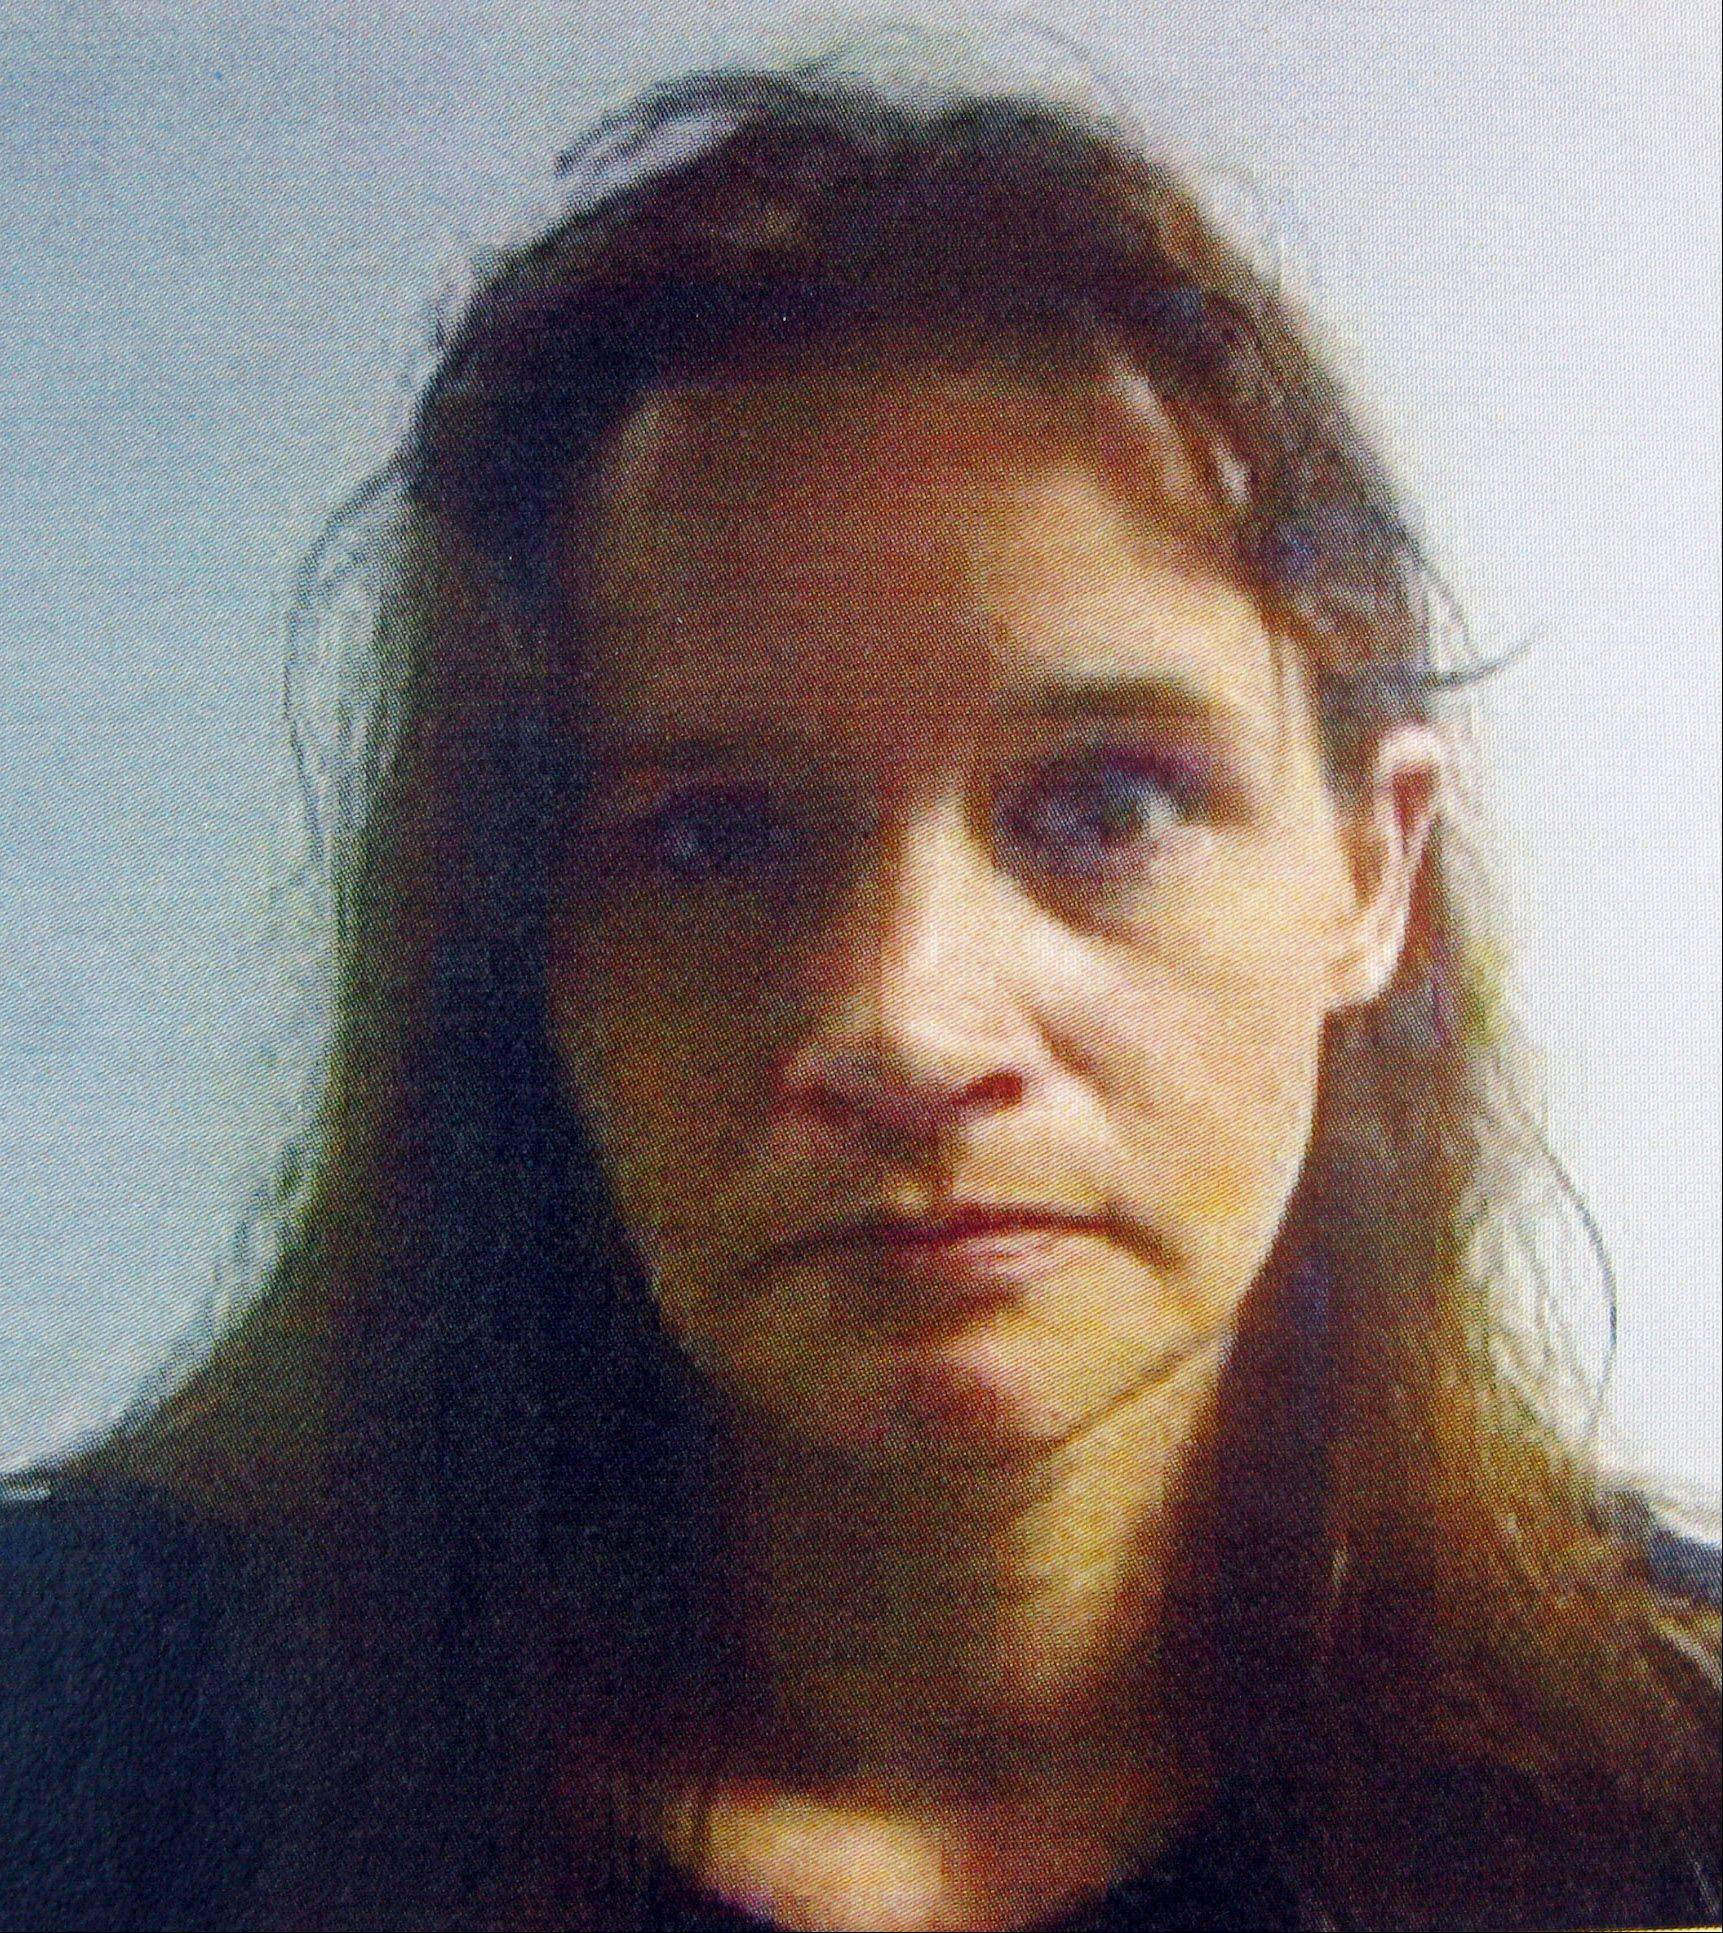 Sherry T. Best is charged with drug induced homicide and concealing a homicide in connection with the death of Melissa Ann Best.